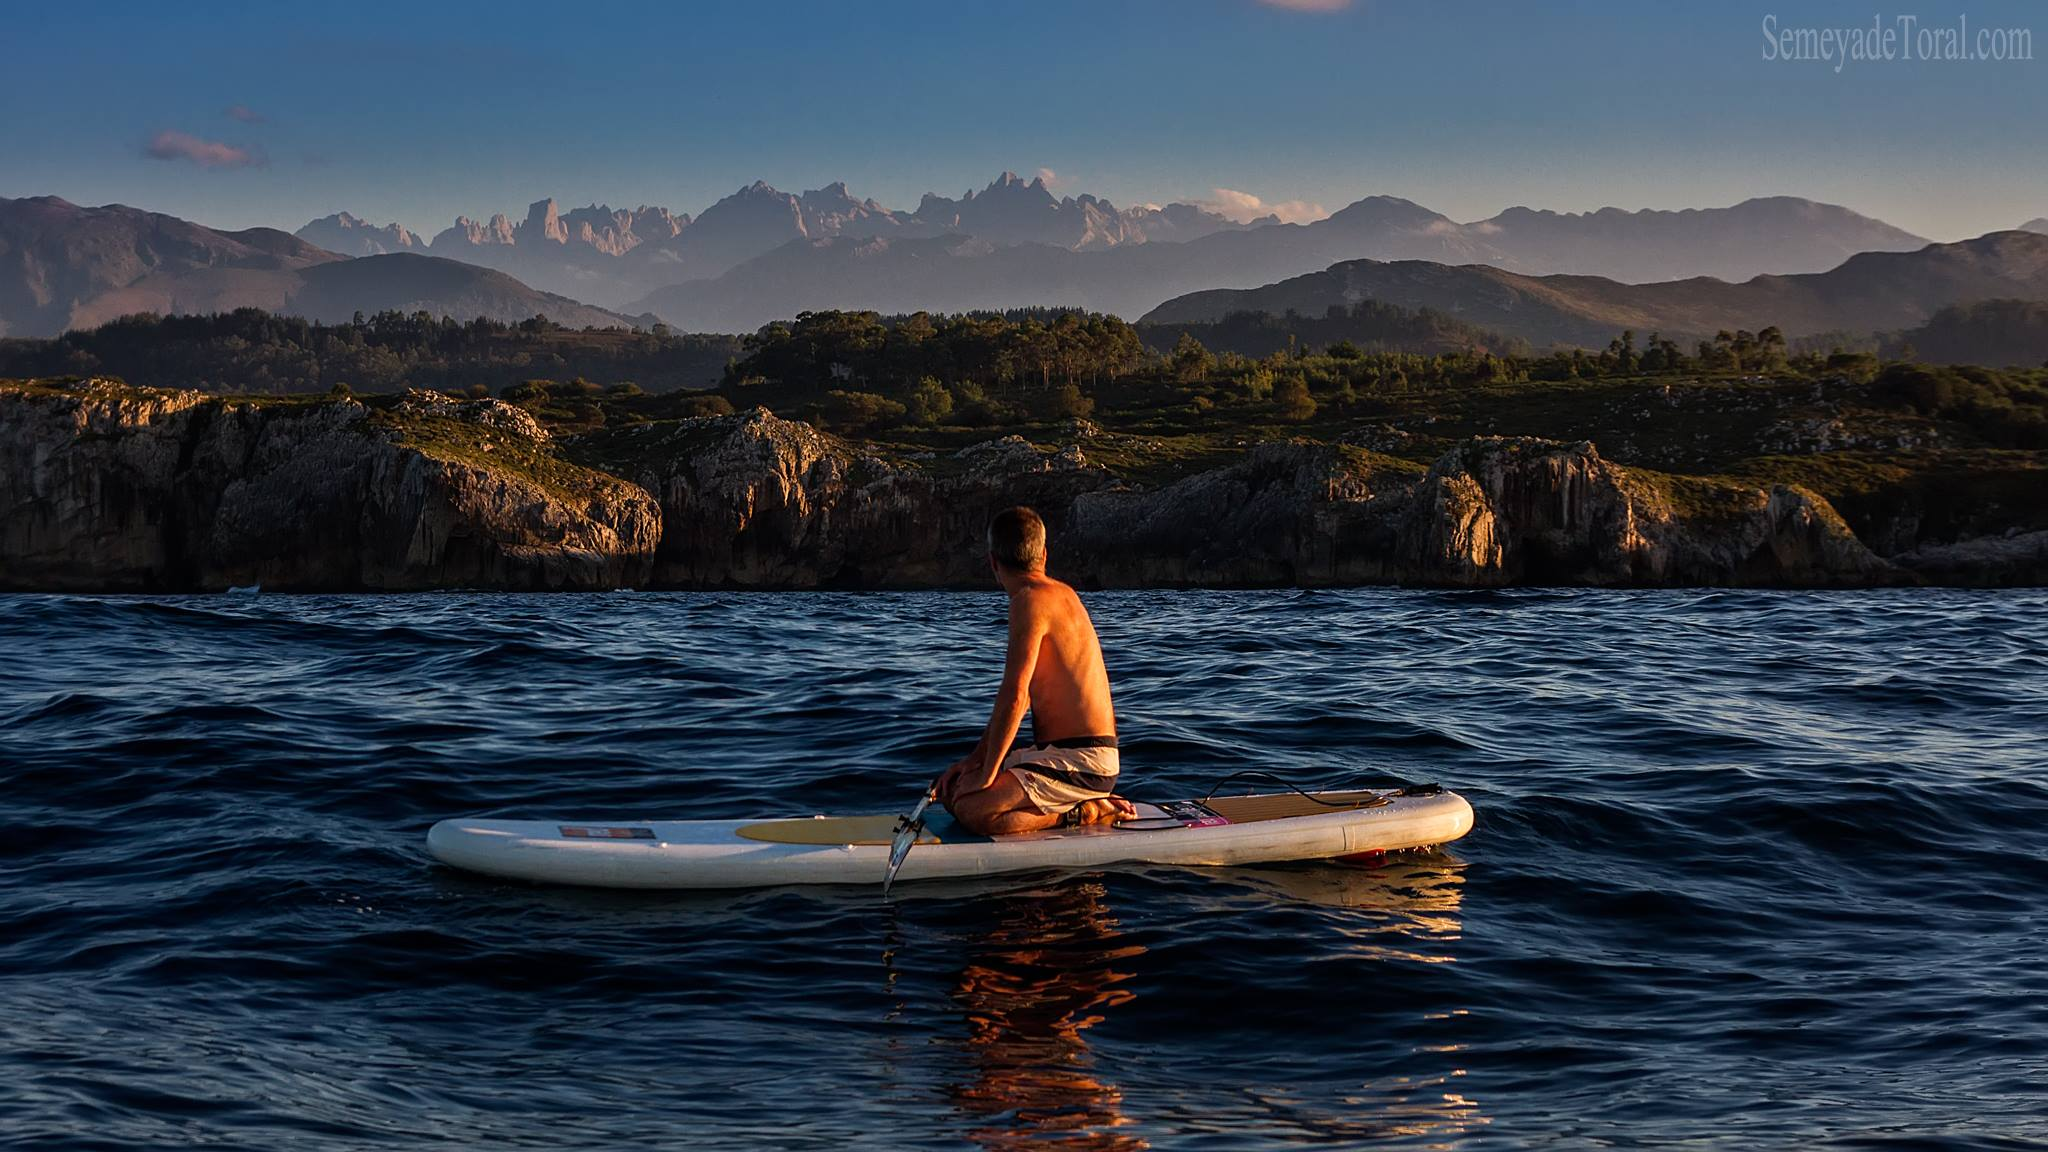 STAND UP PADDLE SURF - Semeya  de Toral